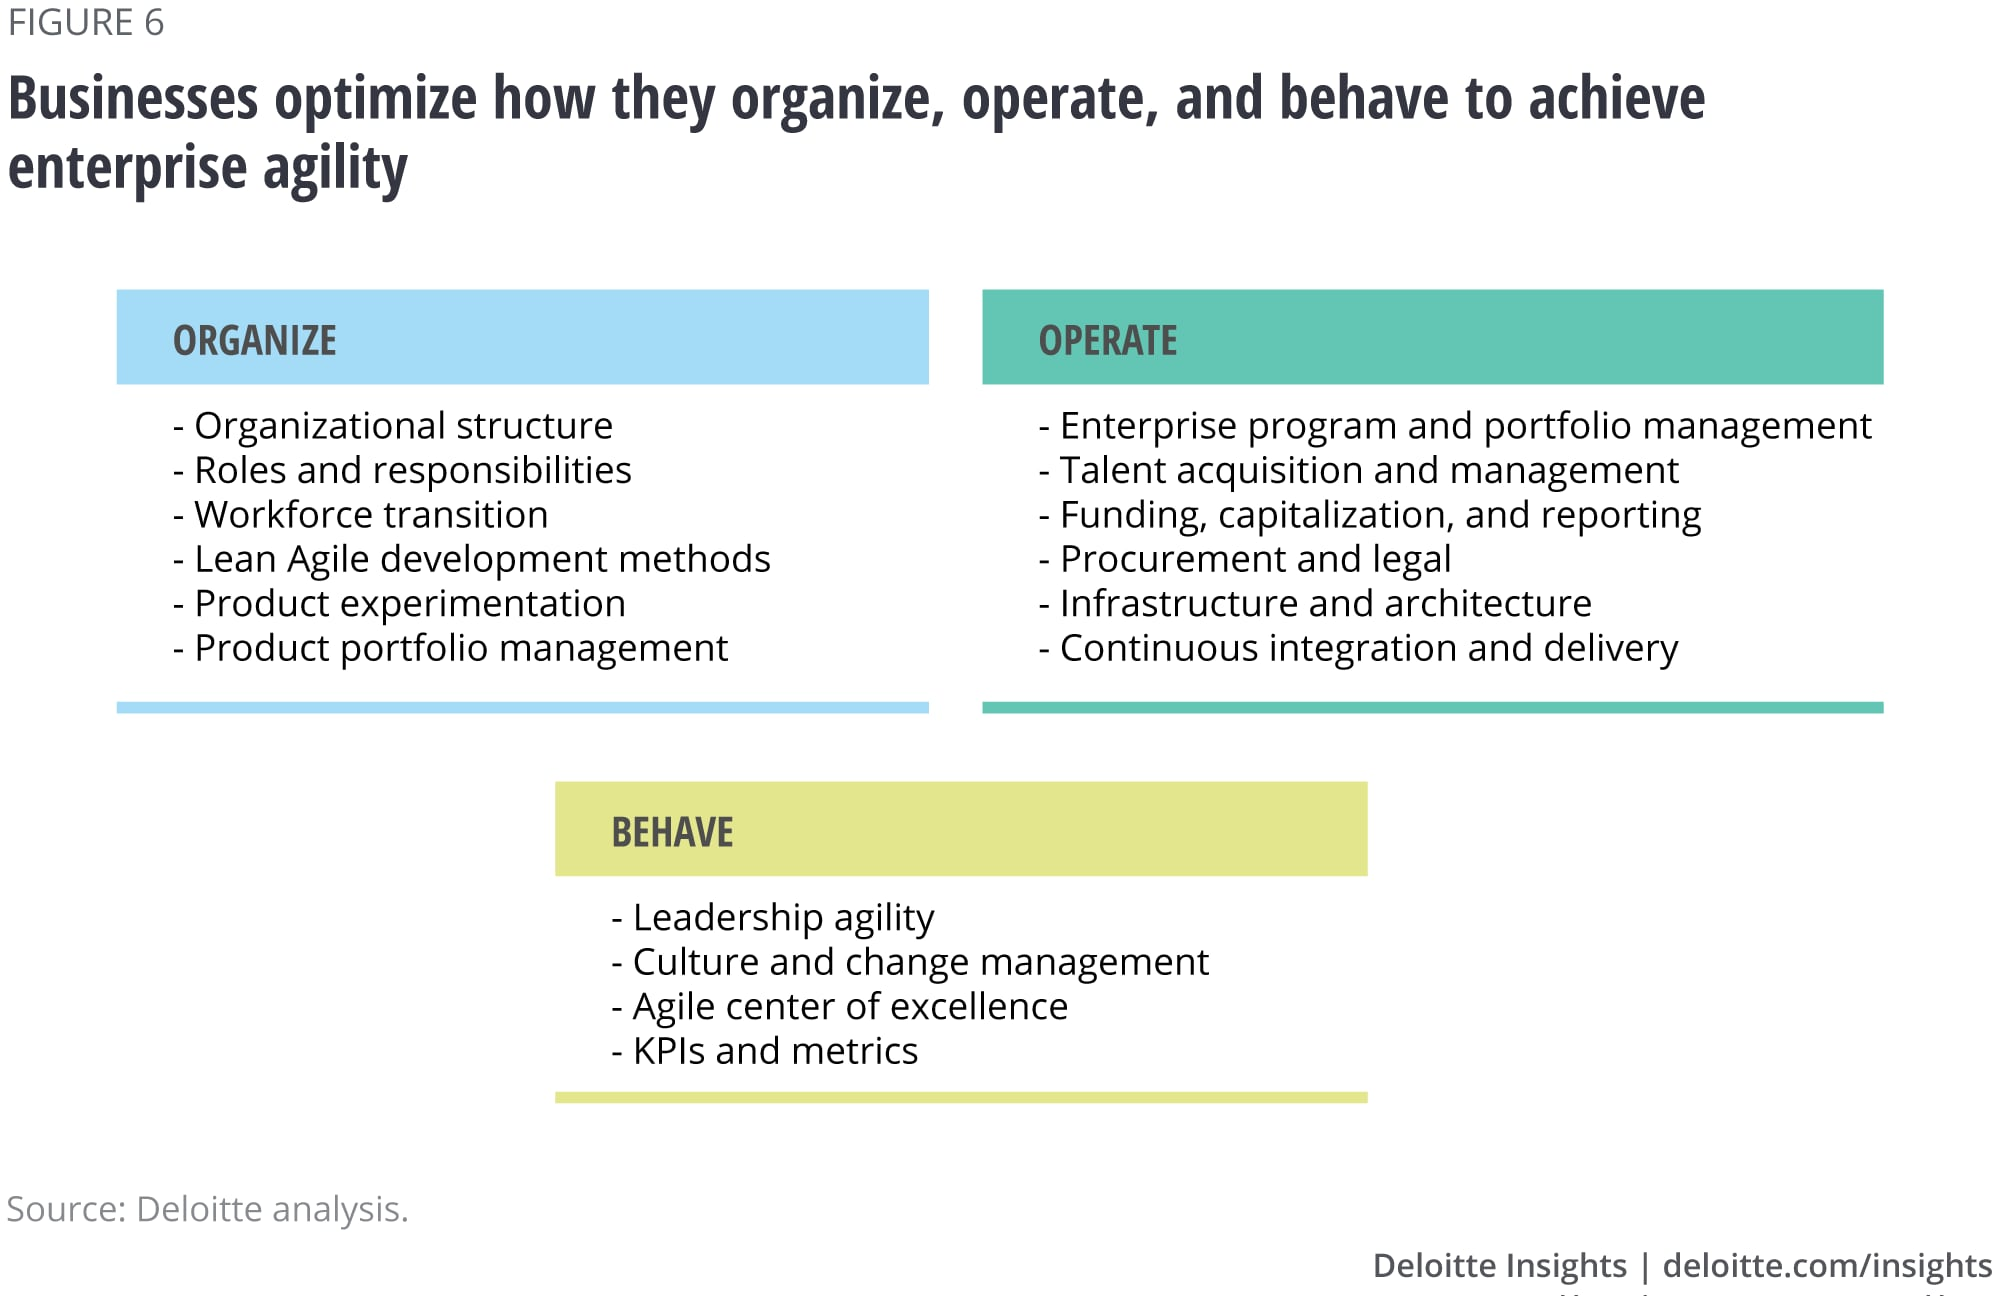 Businesses optimize how they organize, operate, and behave to achieve enterprise agility